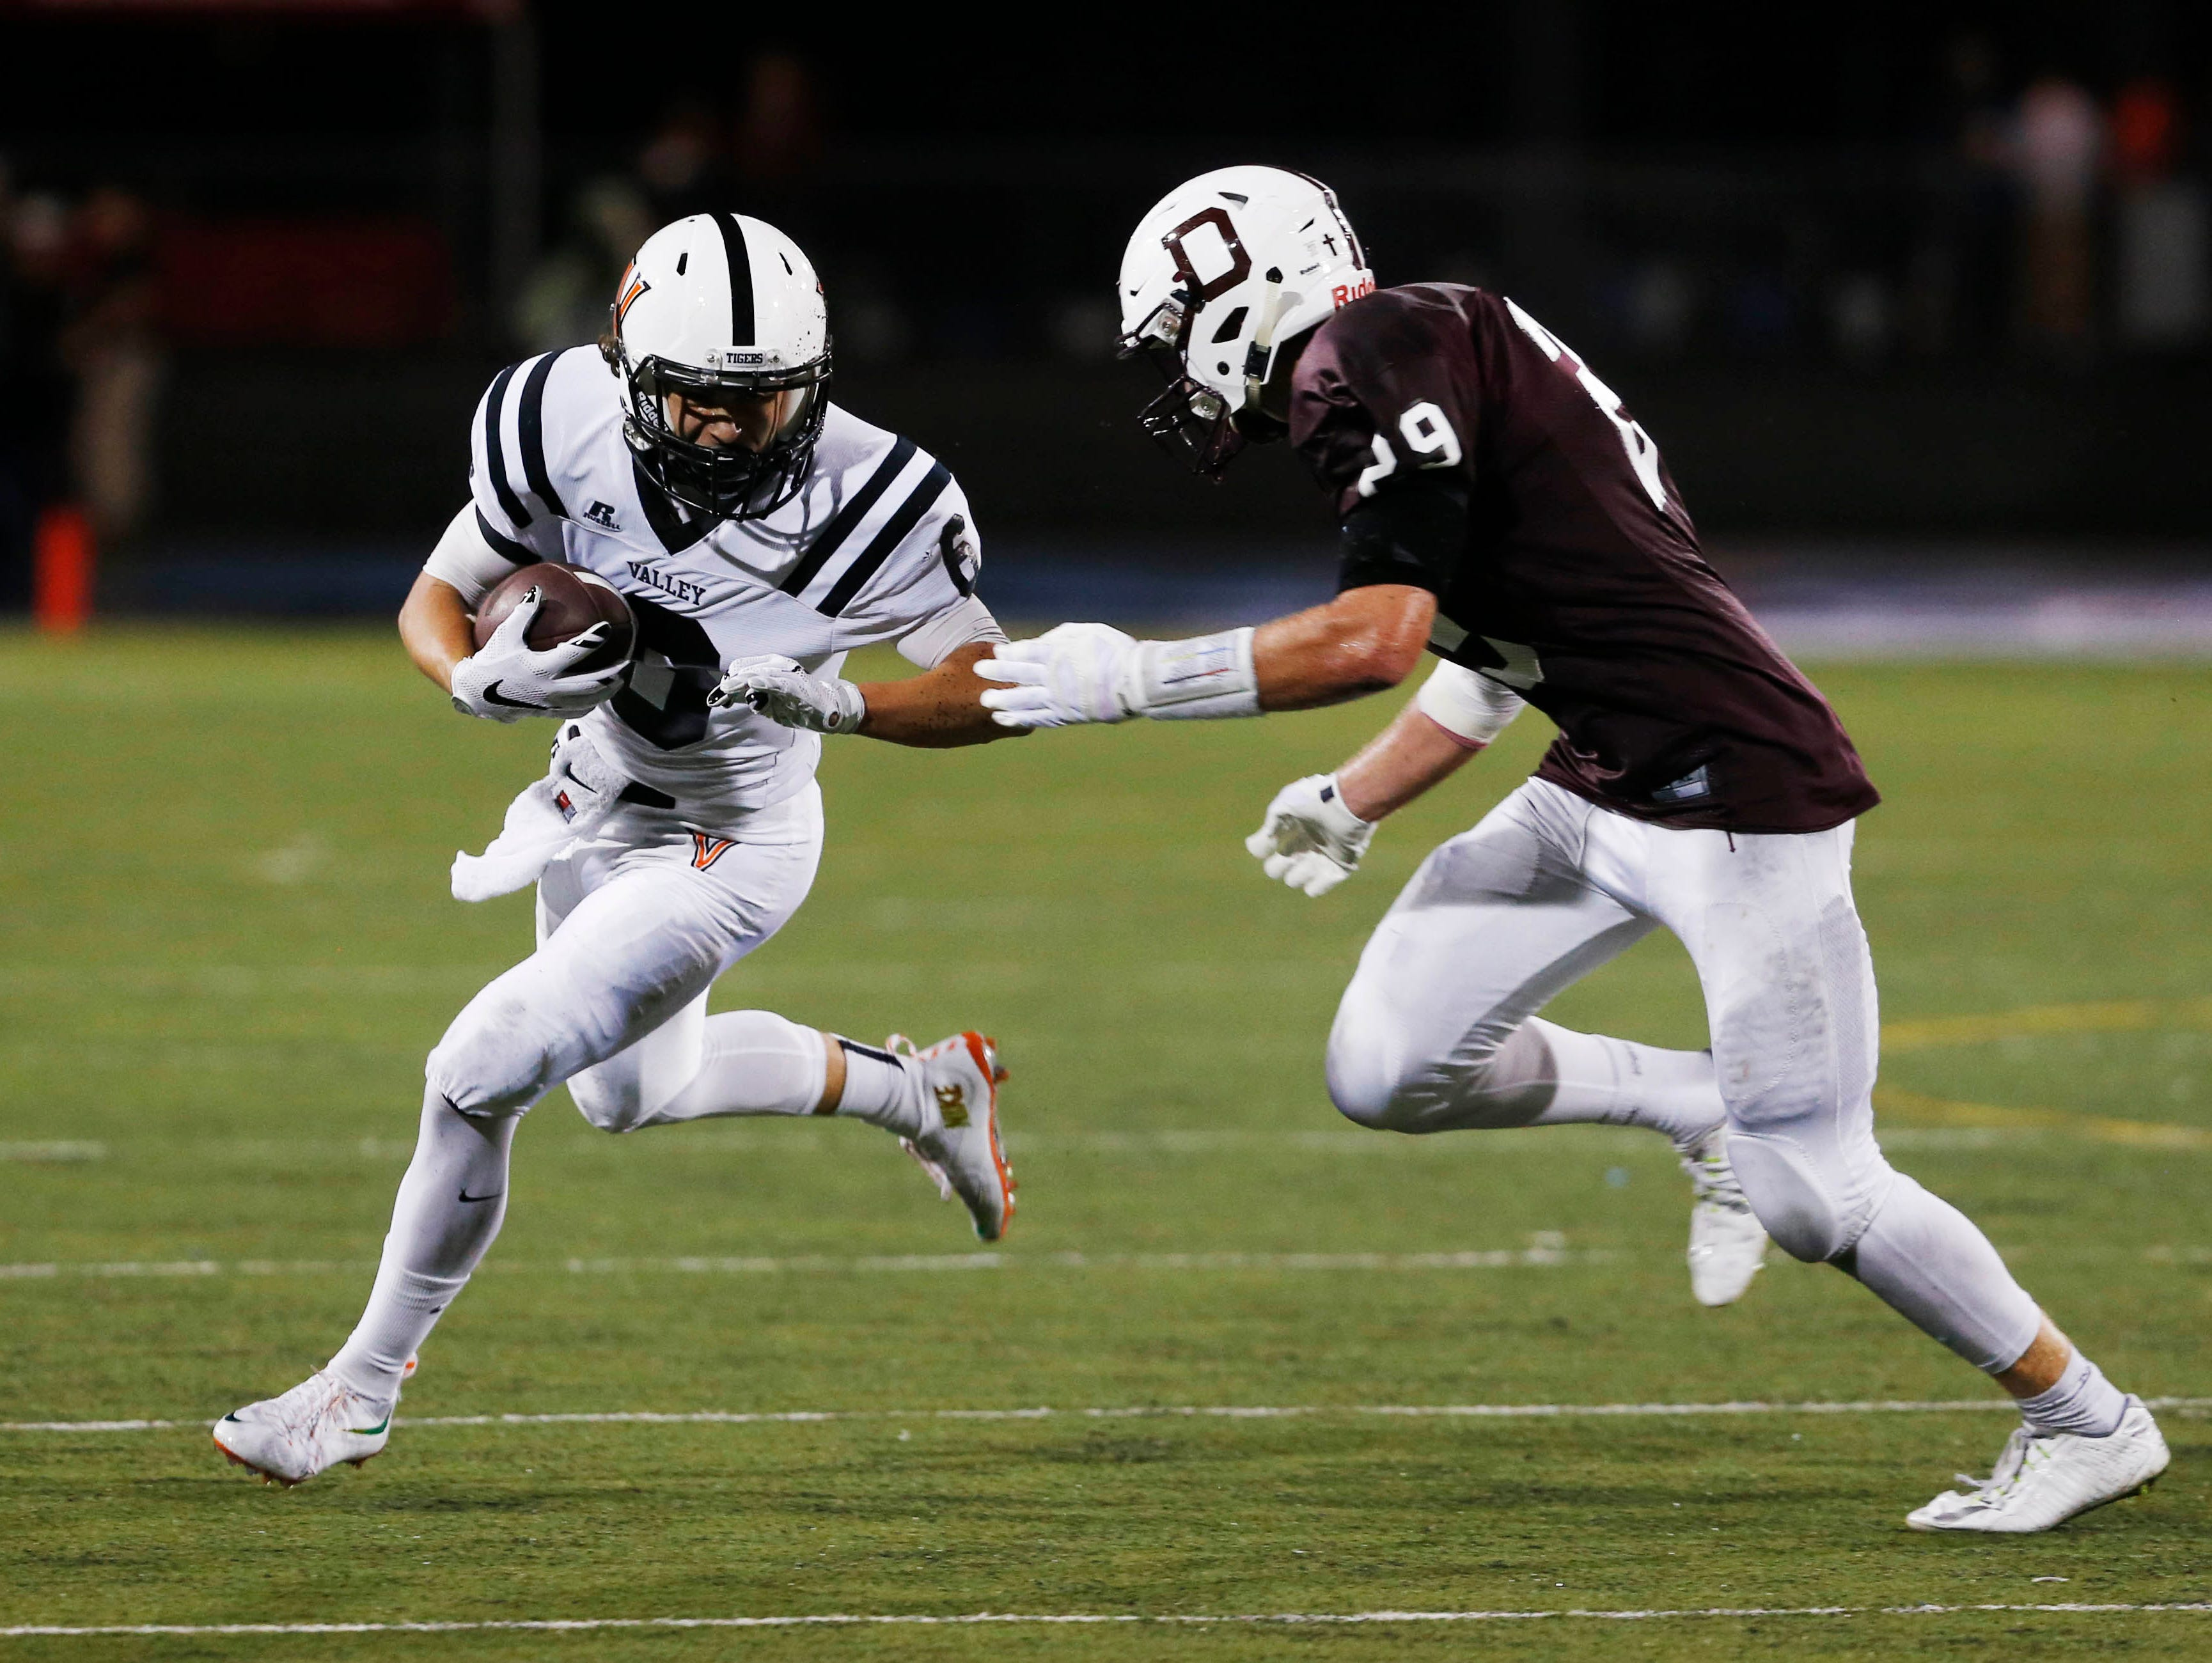 Valley's Braeden Heald (6) tries to manuever around Dowling Catholic's Jacob Shedenhelm (29) Friday, Sept. 18, 2015, at Drake Stadium in Des Moines.